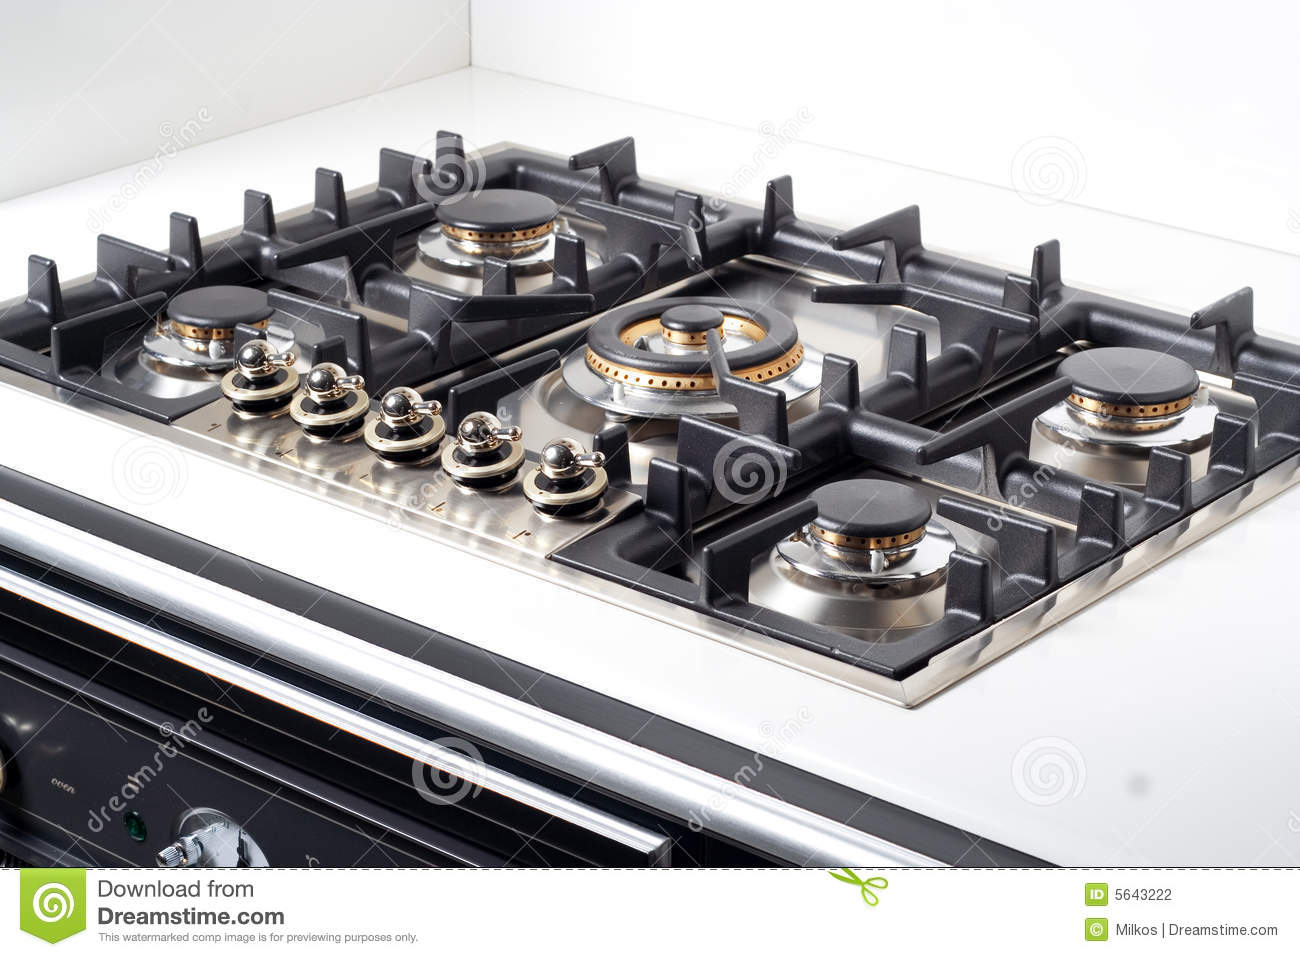 Modern Kitchen Stove modern large gas stove stock photography - image: 5643222